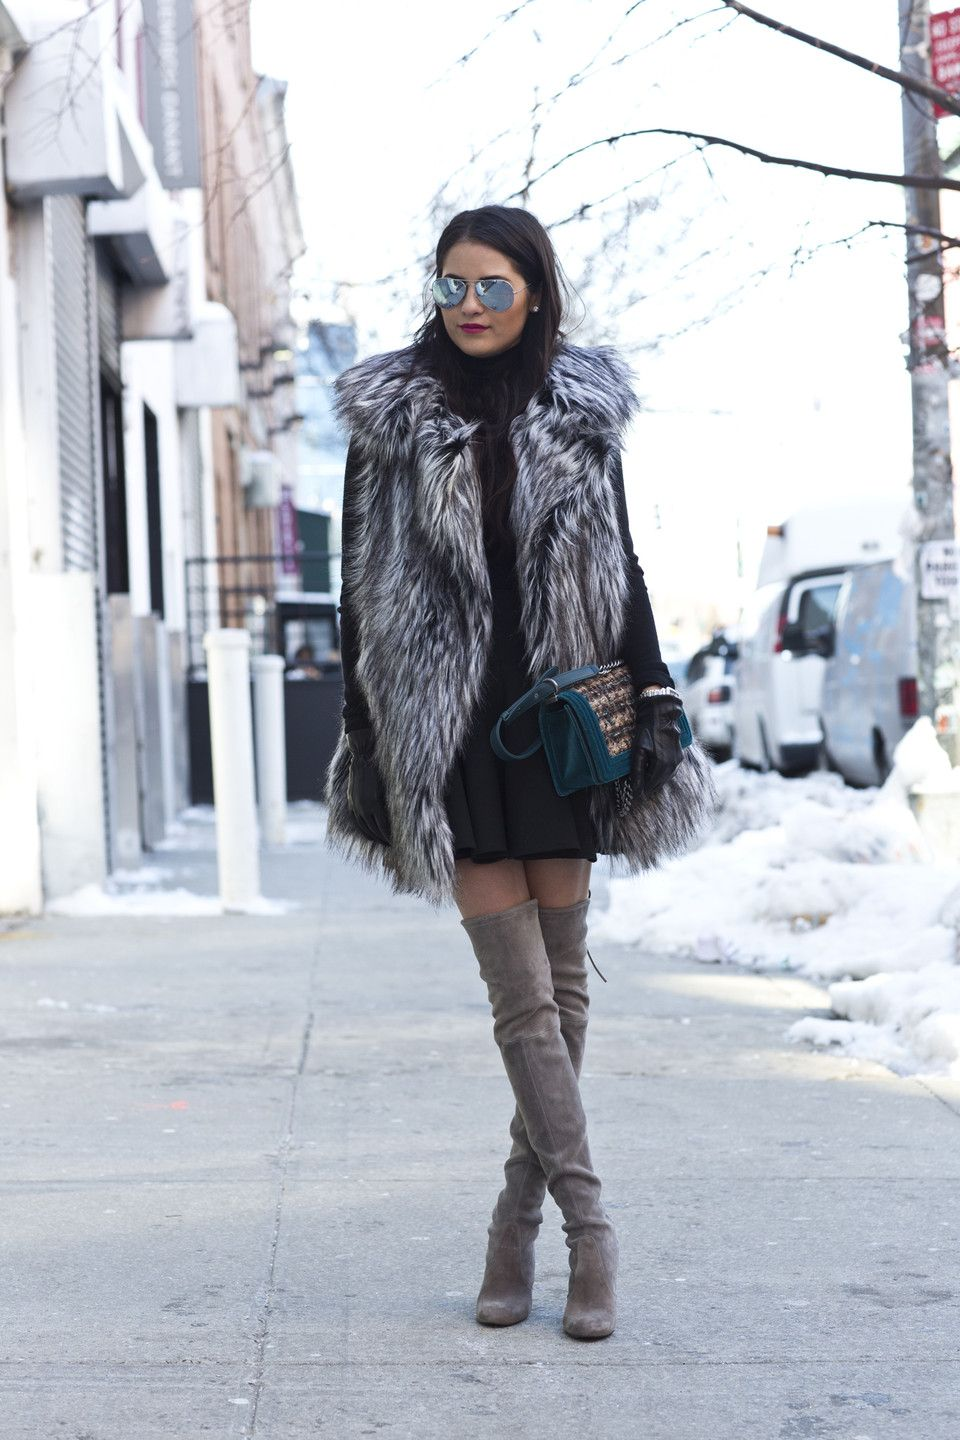 e96b4199f3a You need this look!!! Rach Parcell Faux Fur Vest and Thigh High ...